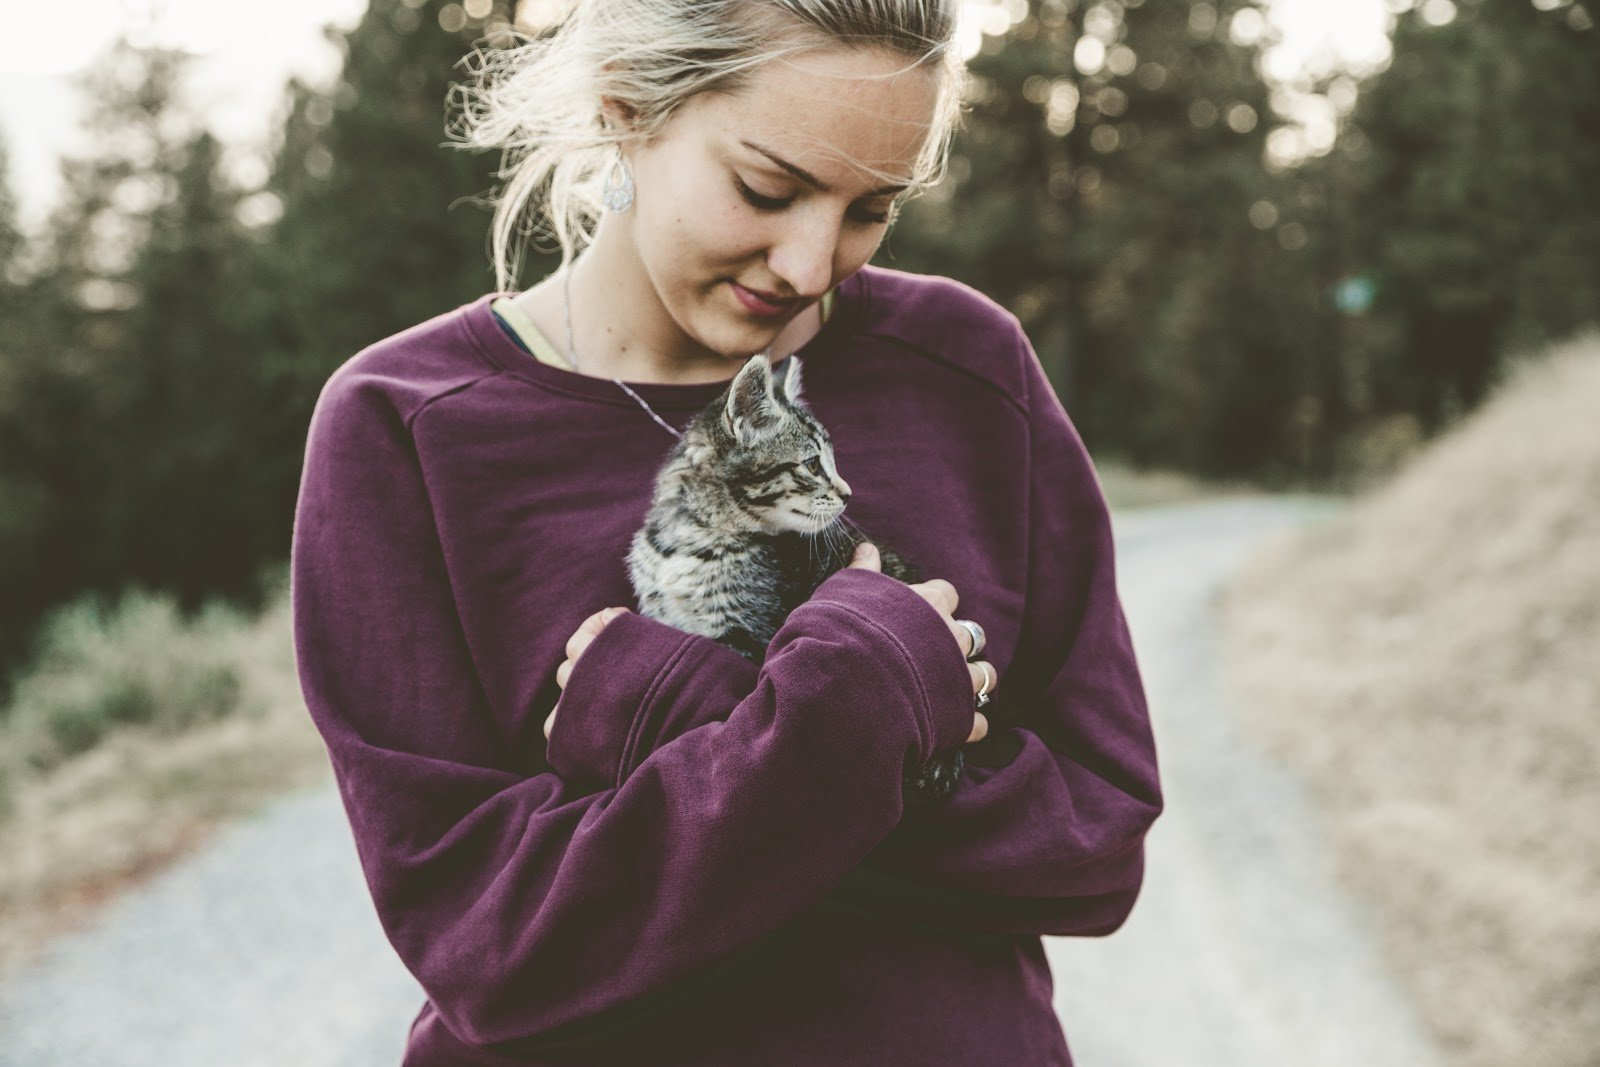 A girl hug a kitten